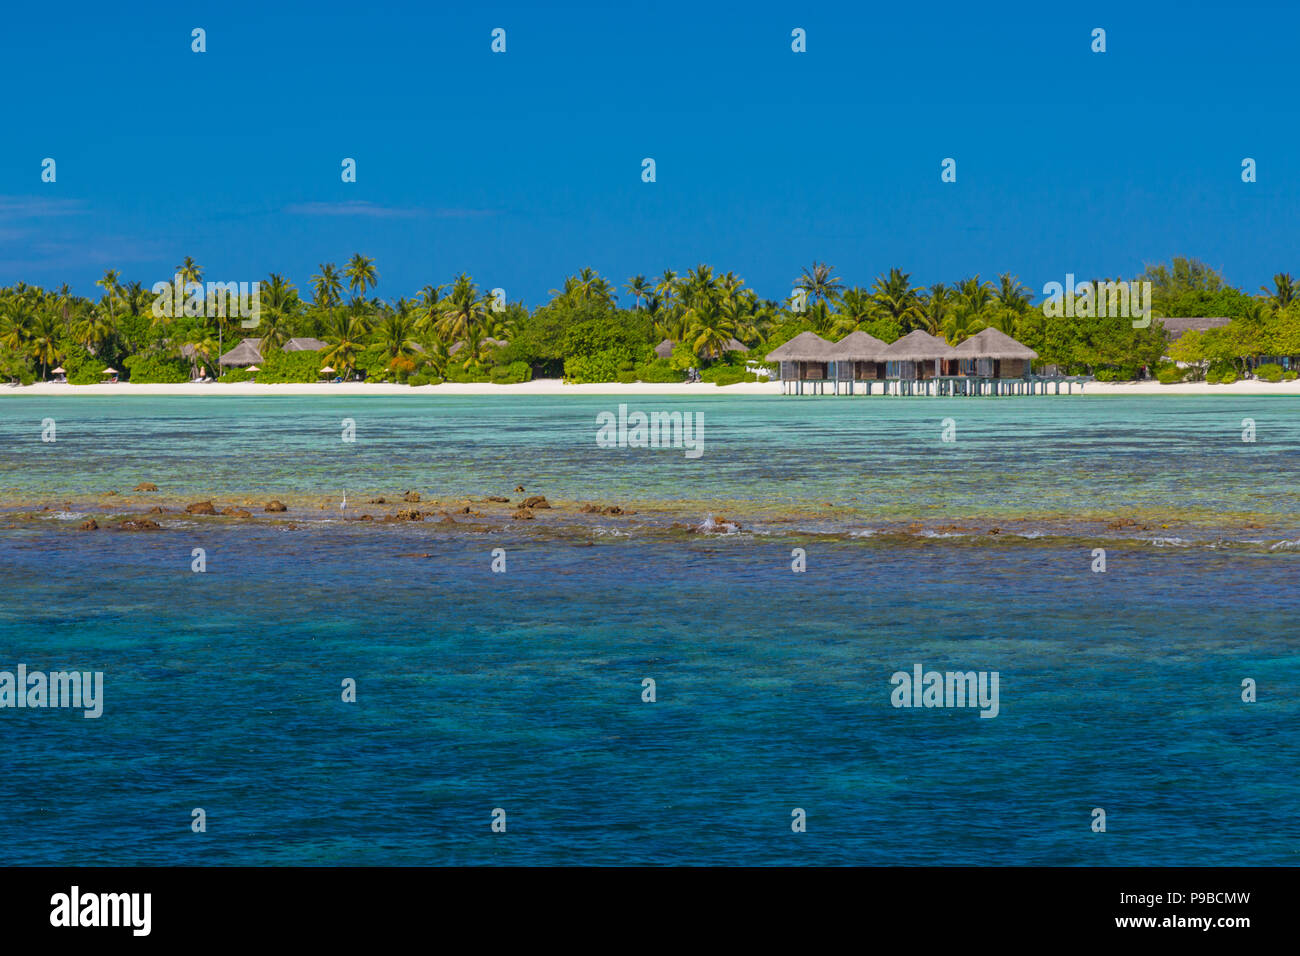 Fantastic tropical resort or hotel with luxury waster bungalow - Stock Image